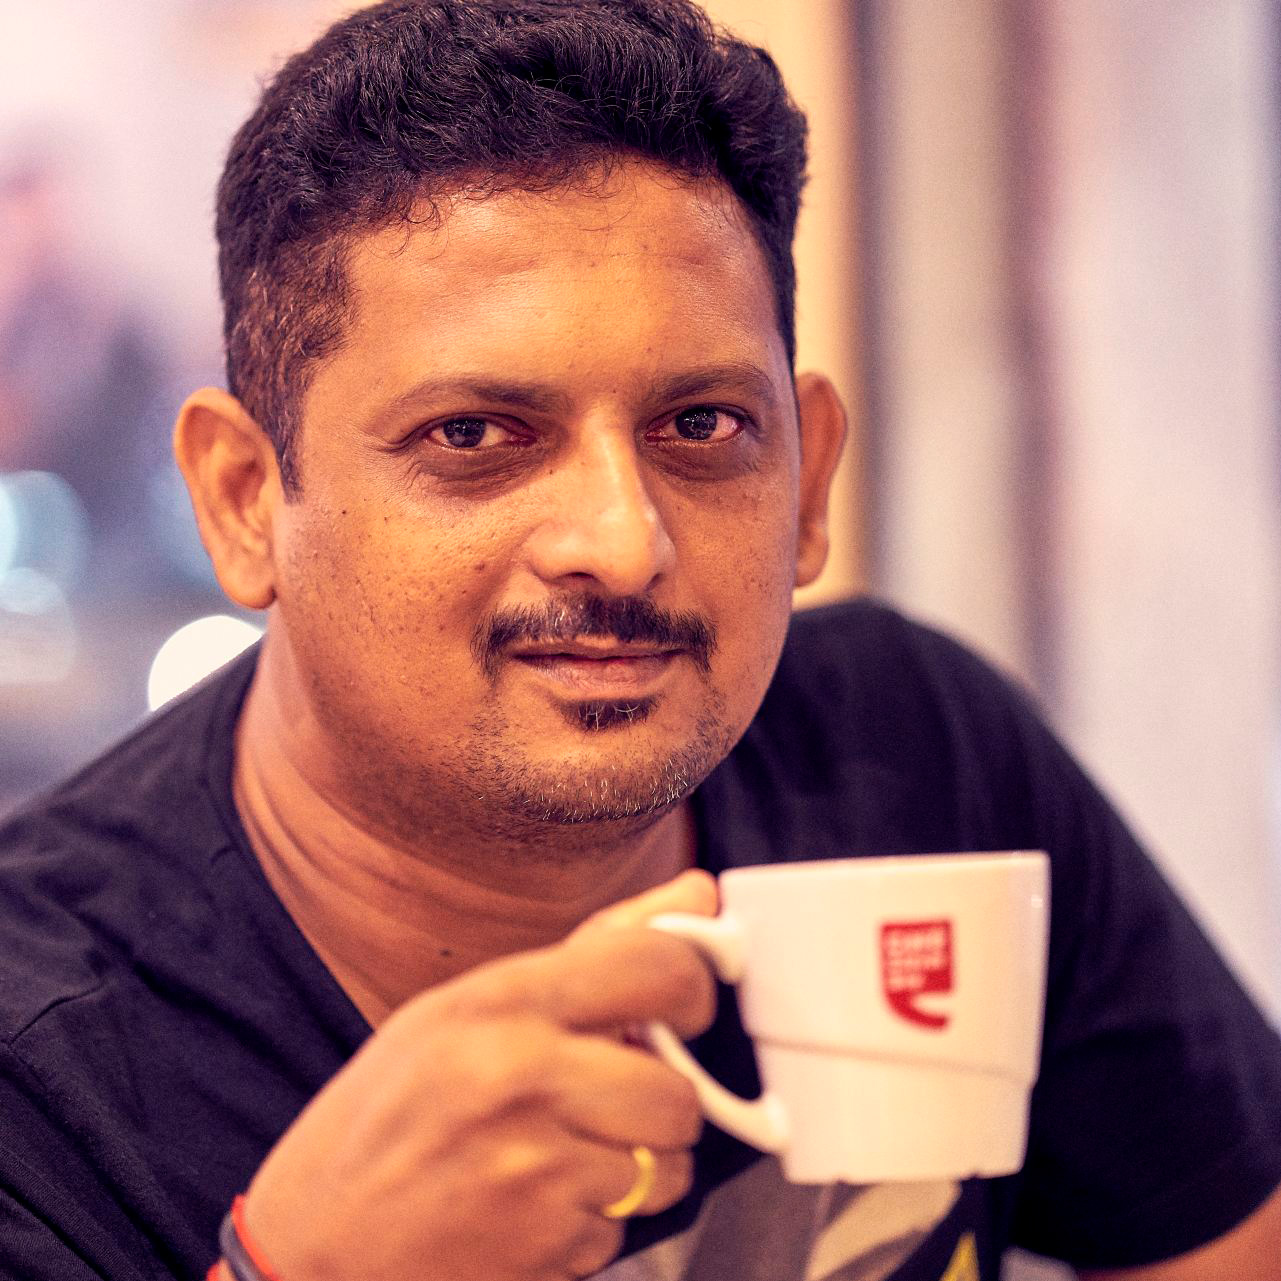 R Prasana Venkatesh is a professional photographer from Chennai specializing in People and Advertising photography. He is also a photo mentor who has done more than 100 workshops for beginners as well as for the professionals. He is the lead organizer.